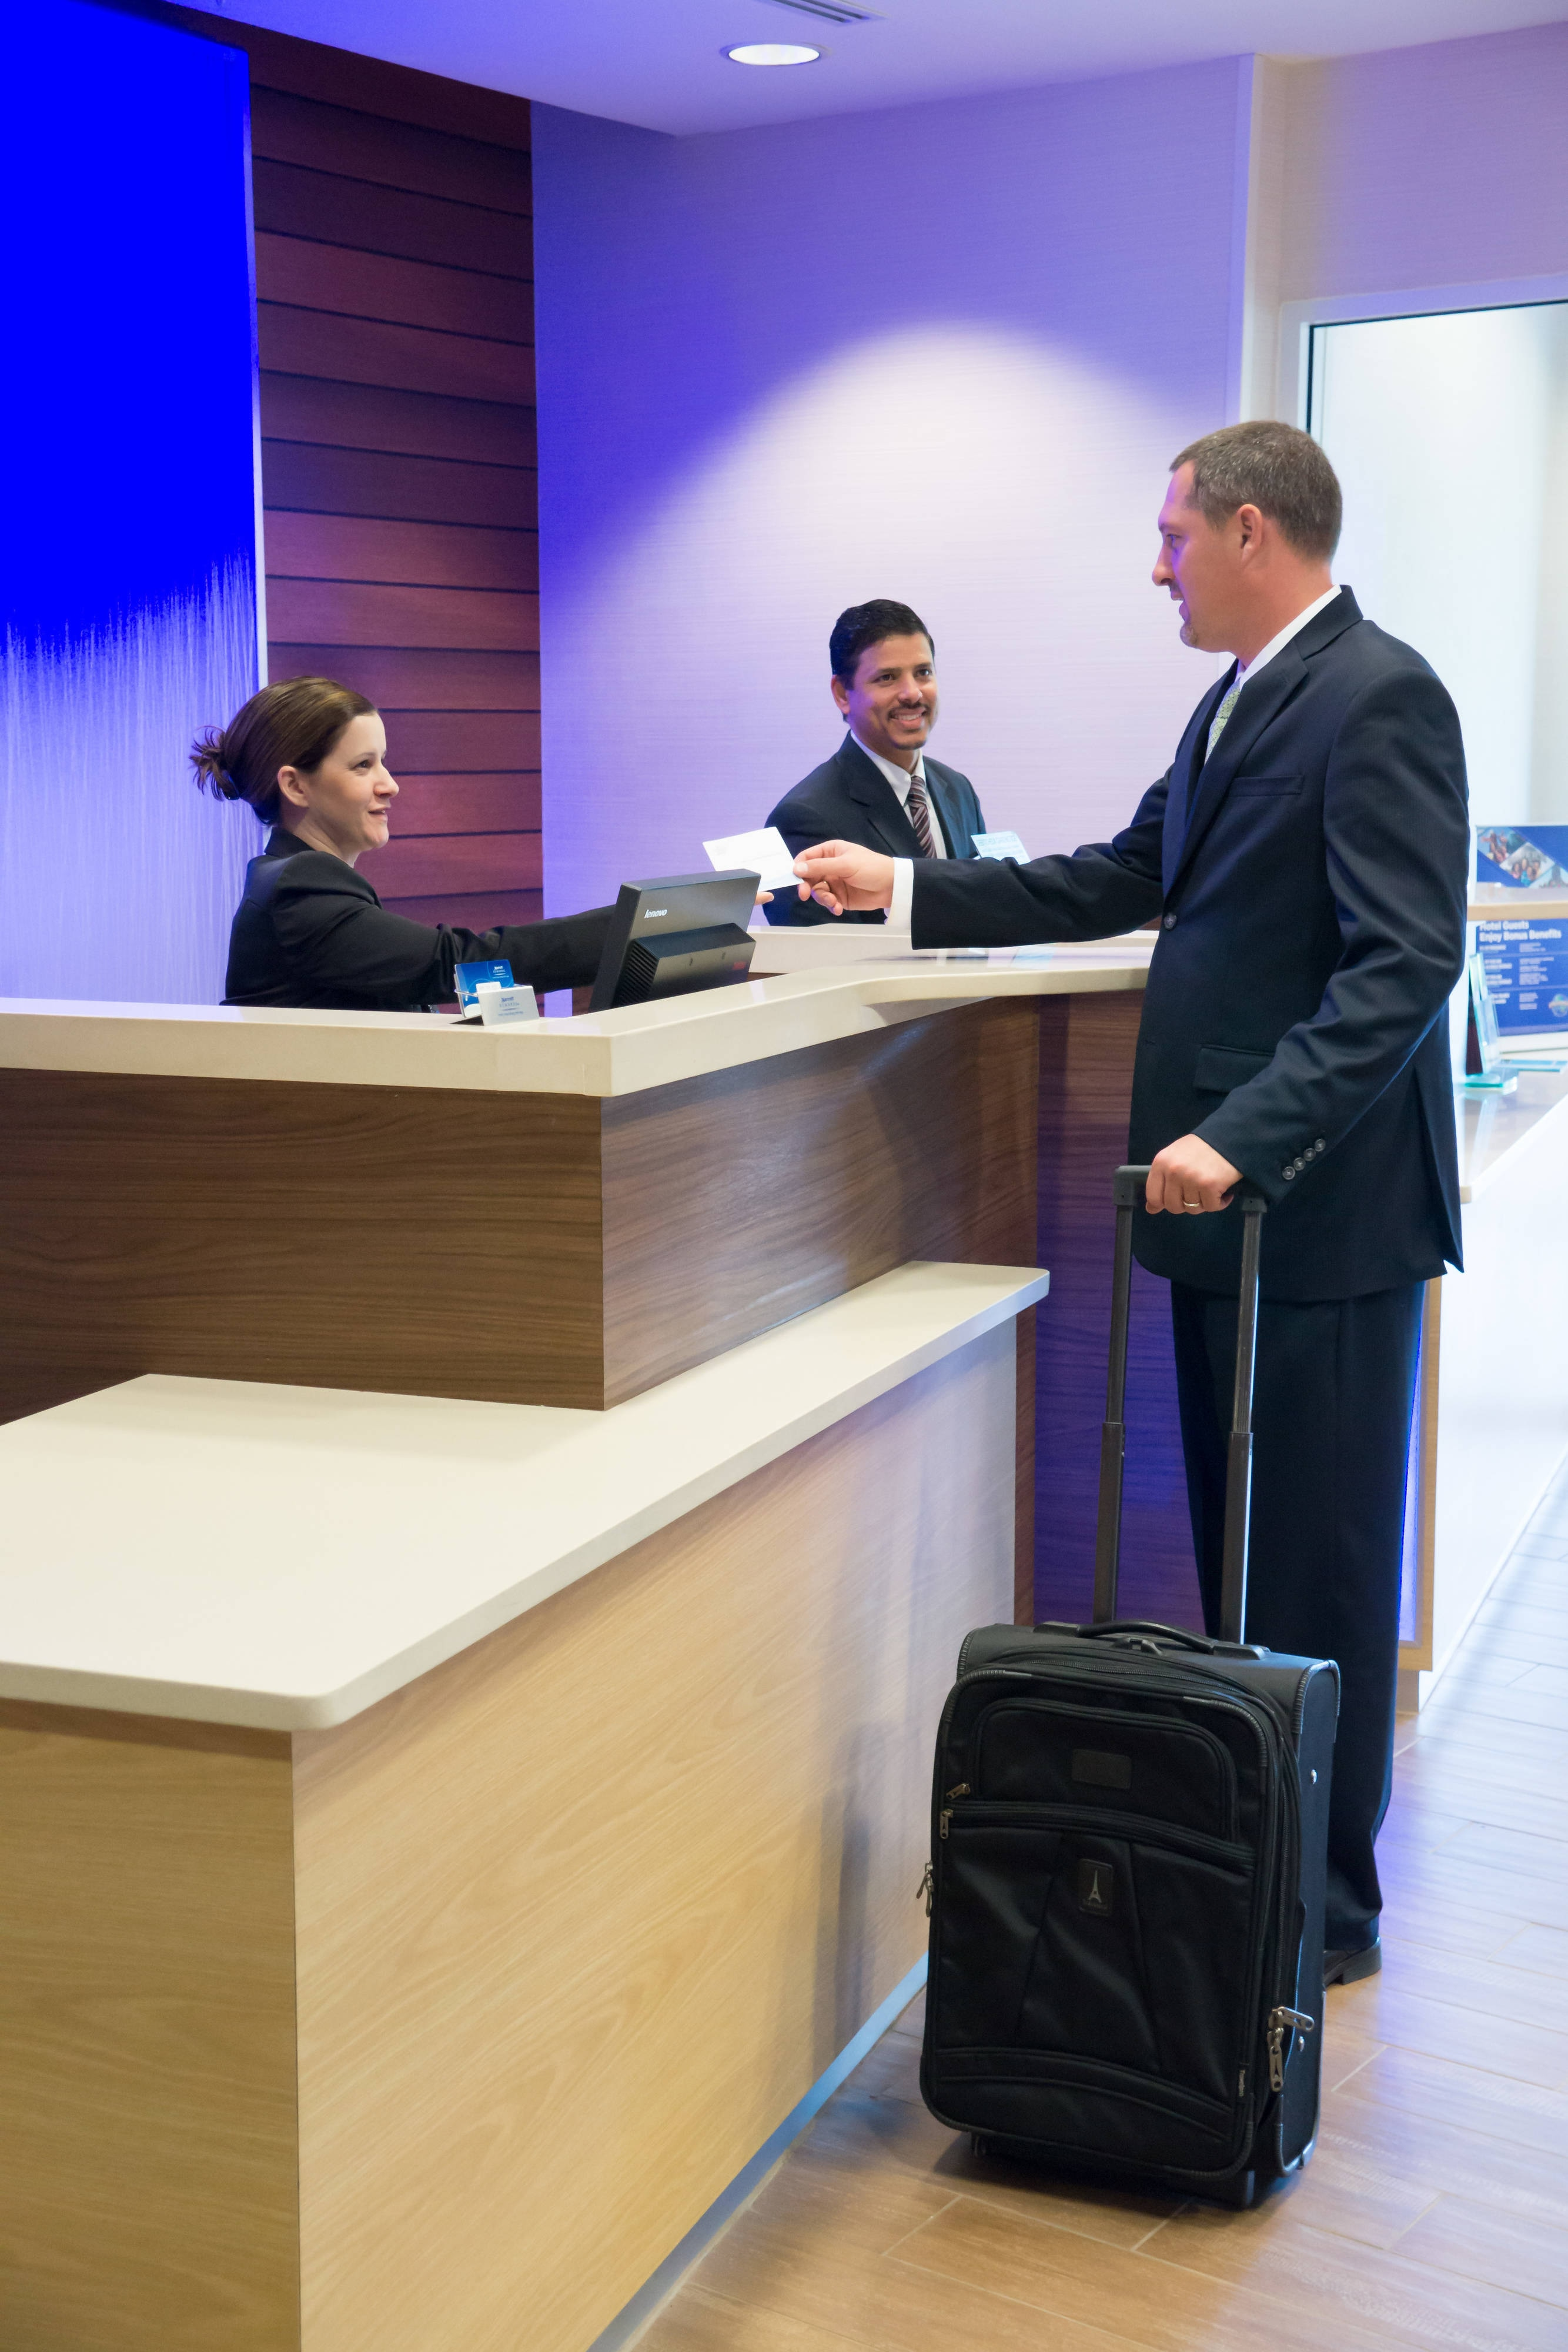 Newly designed front desk with easy check-in